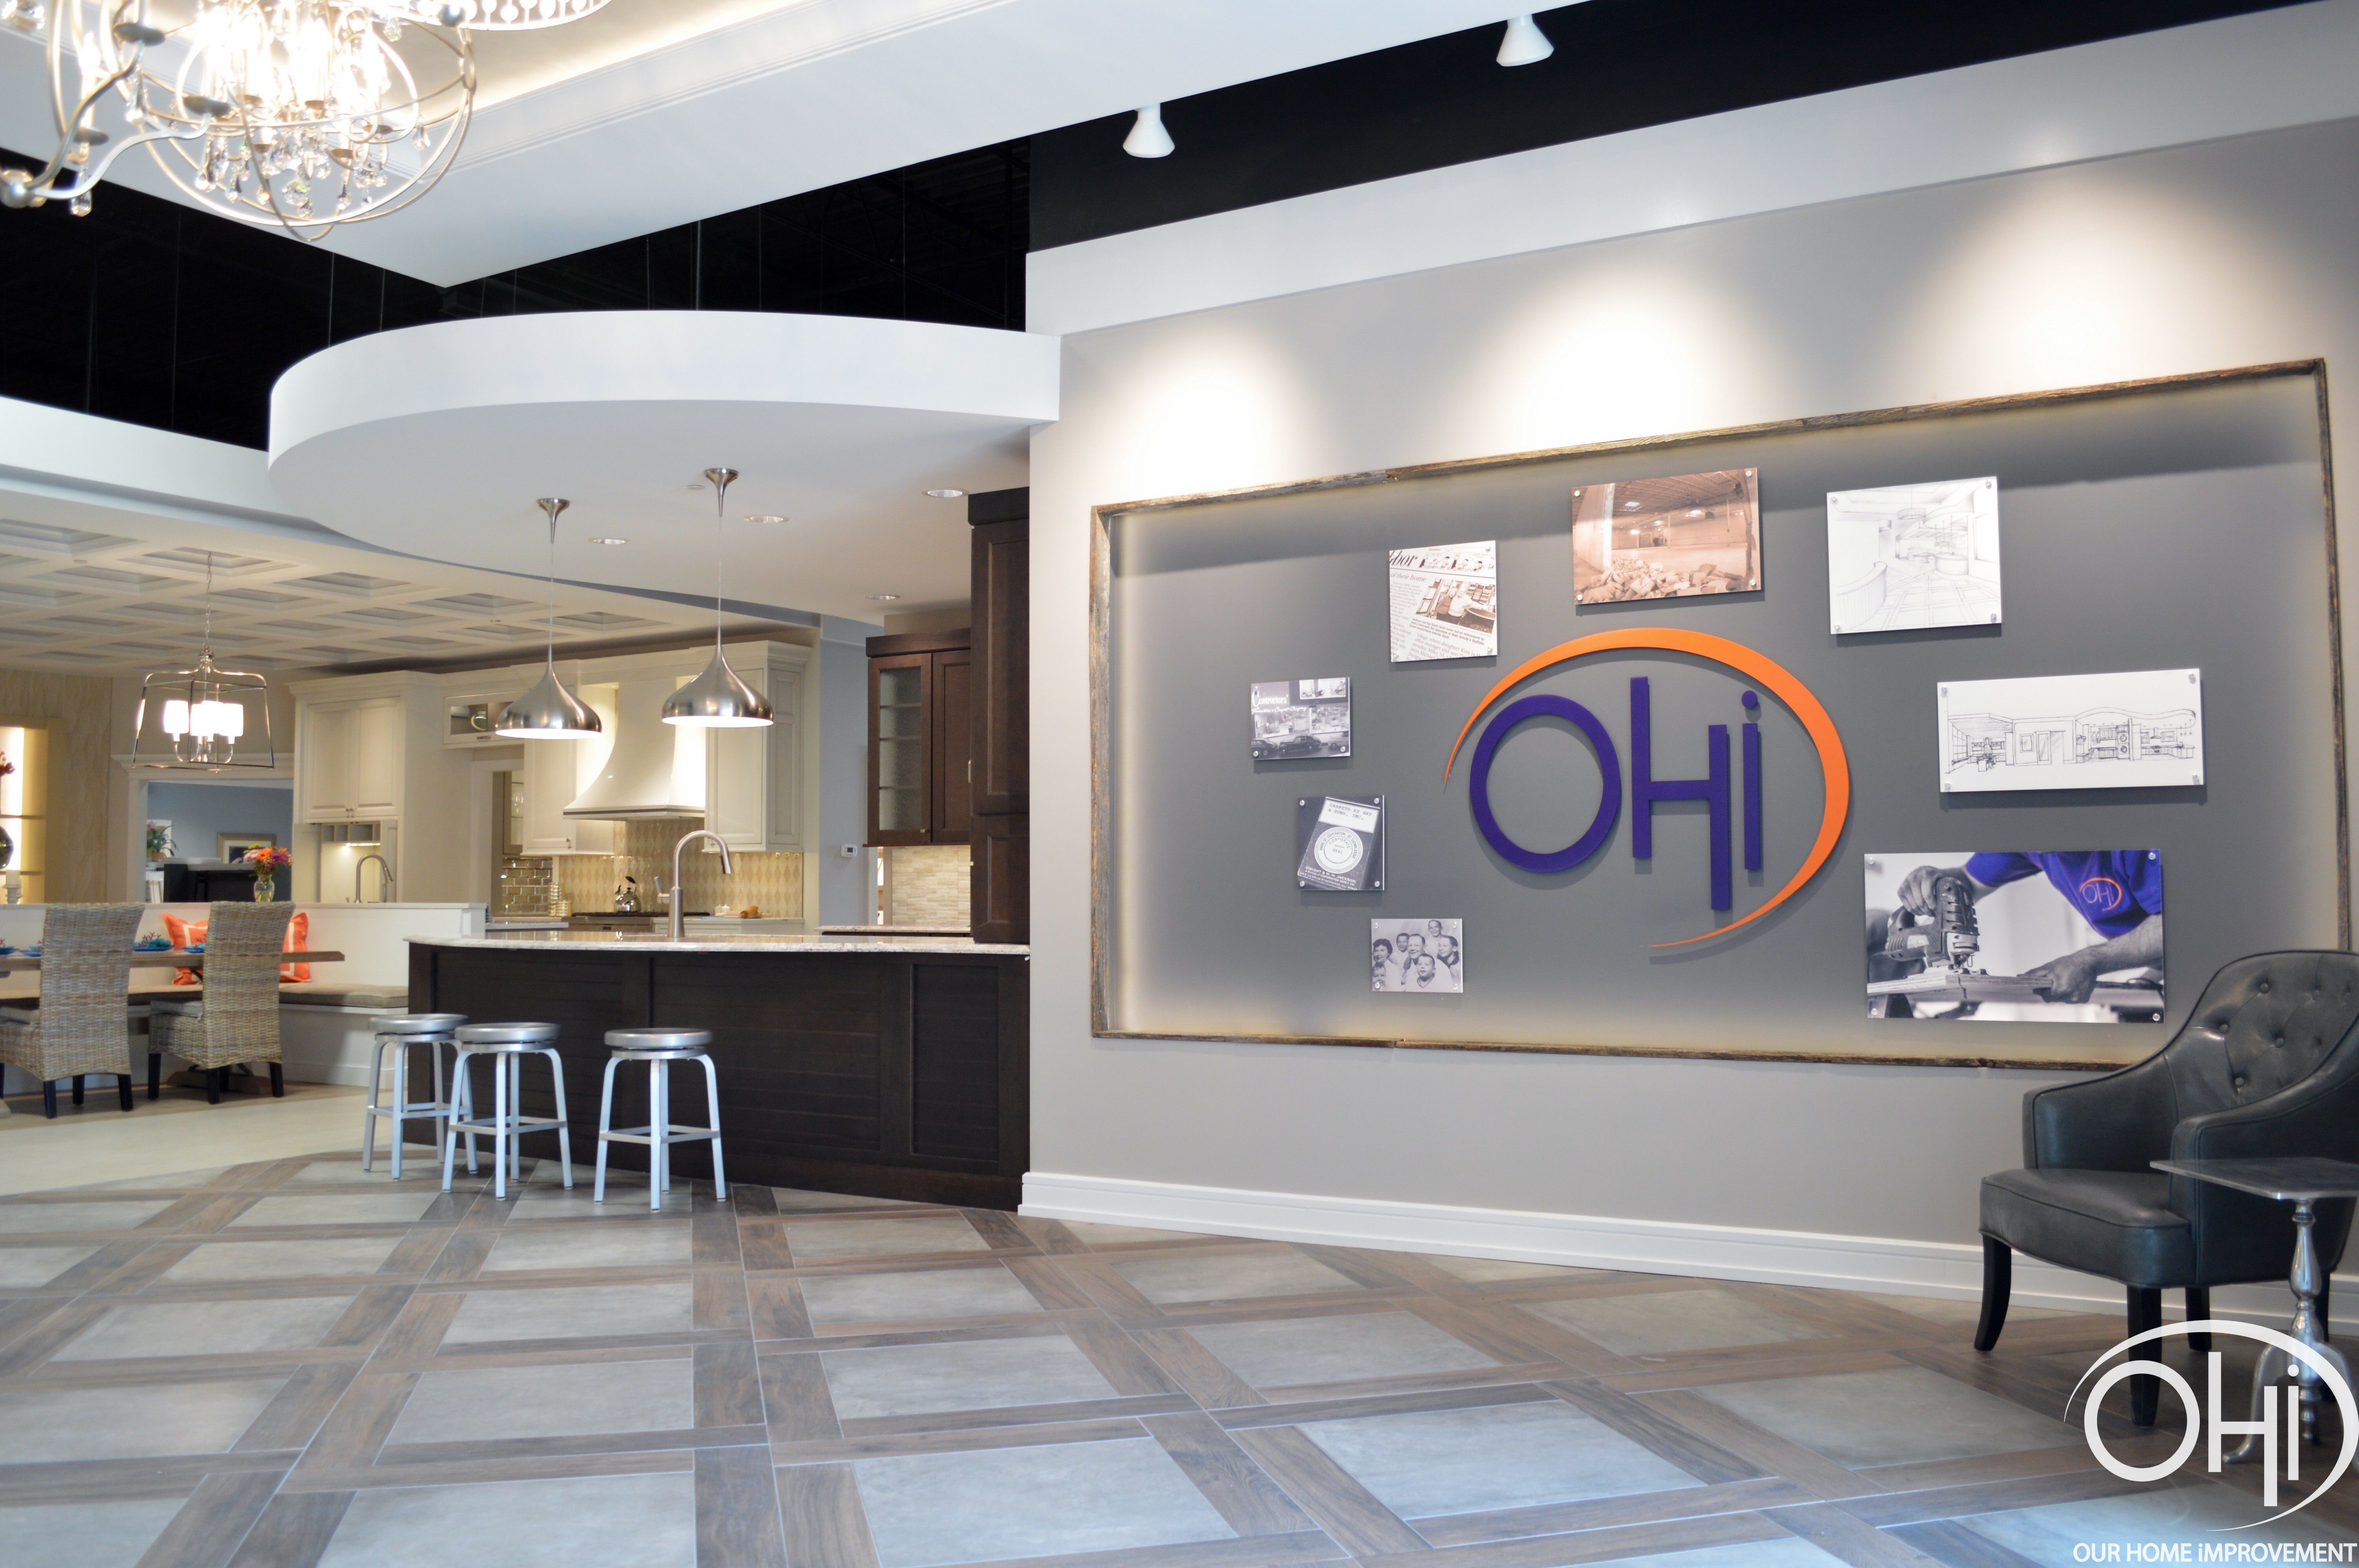 Ohi S Showroom In Elk Grove Village Il Contactohi Chicagoland Kitchen Bath Floors Additions Remodel Homedecor Remo Home House Design Home Remodeling